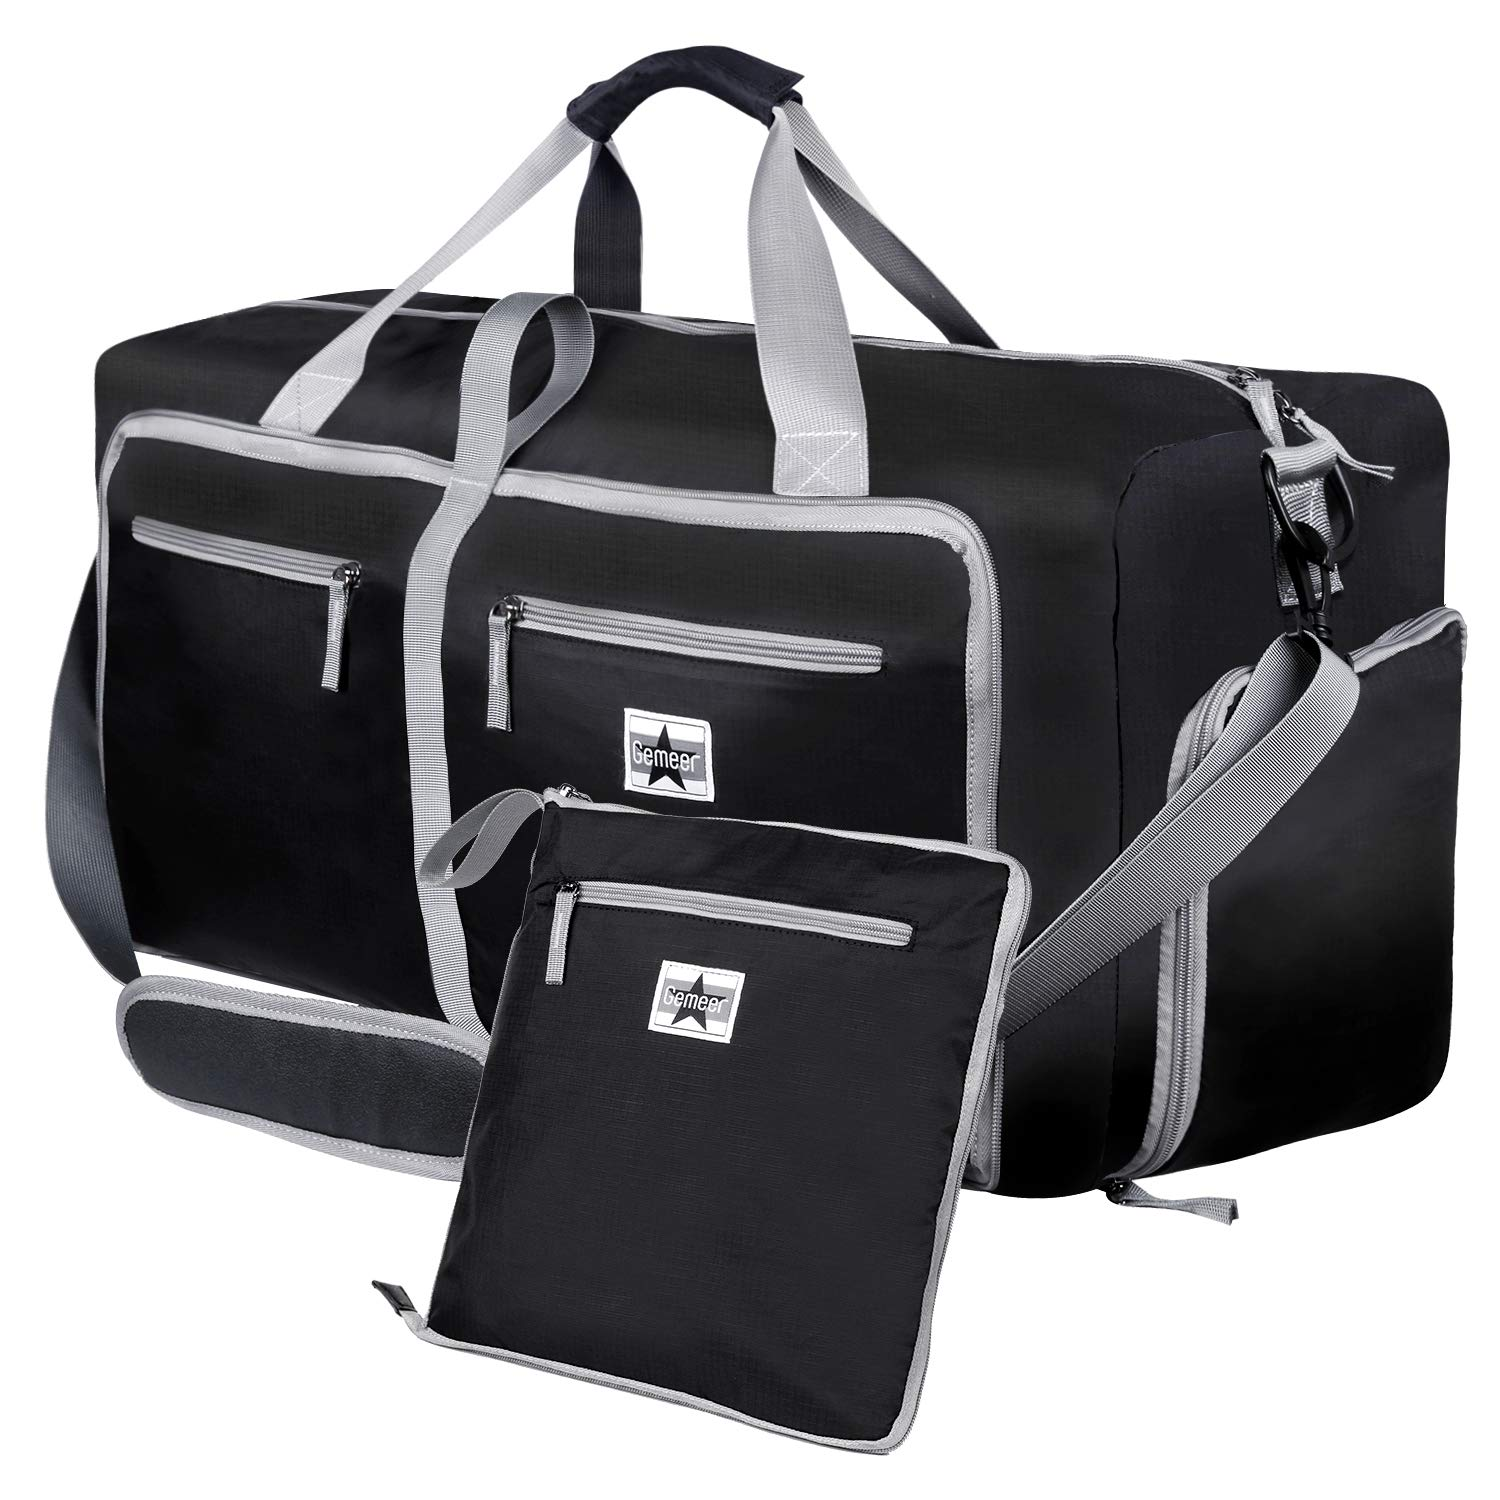 Gemeer Foldable Travel Duffle 65L Only for £8.44 (Good Reviews)